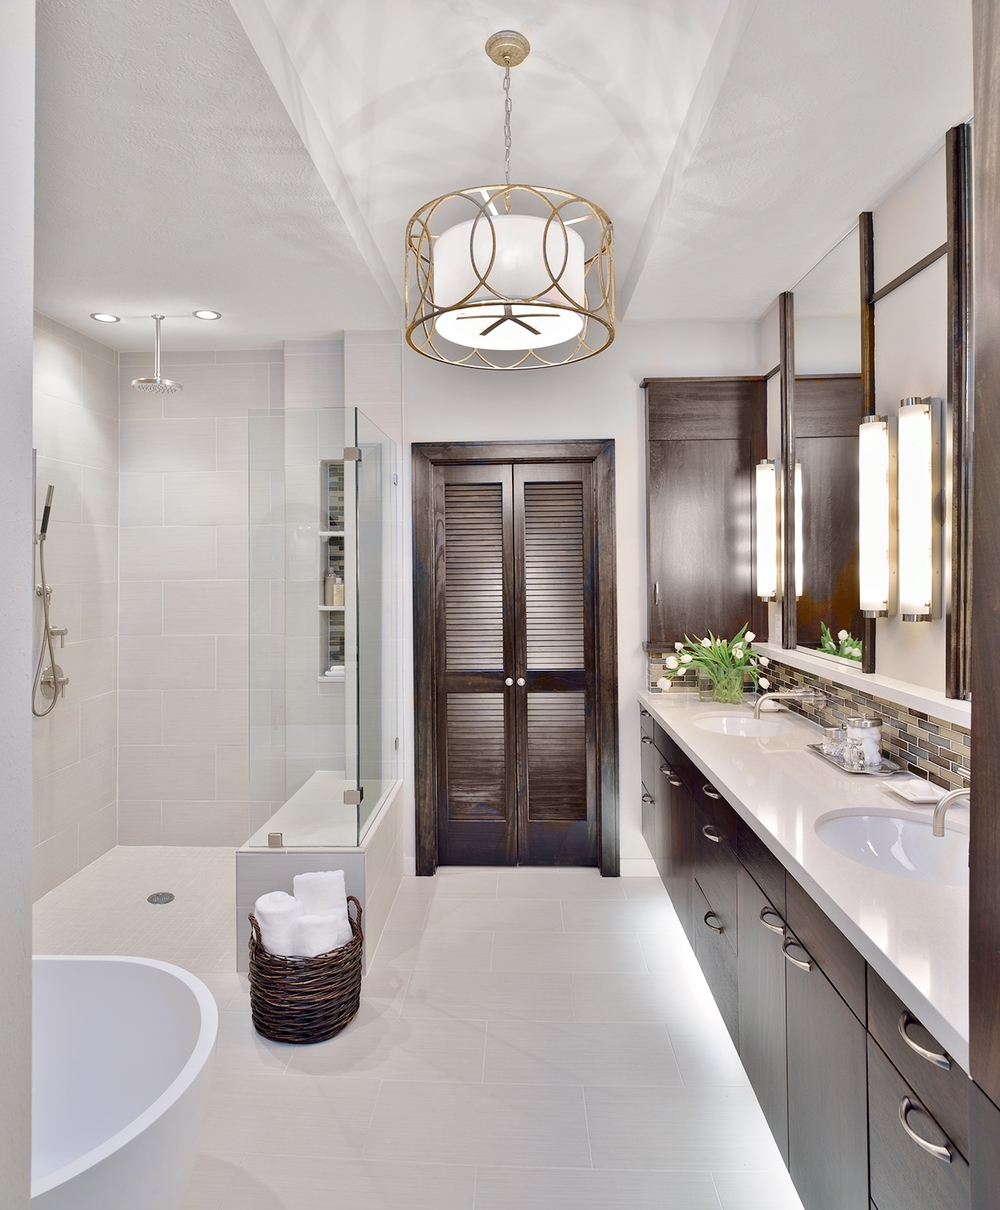 Door Solution For Open Master Bathroom: Planning A Bathroom Remodel? Consider The Layout First